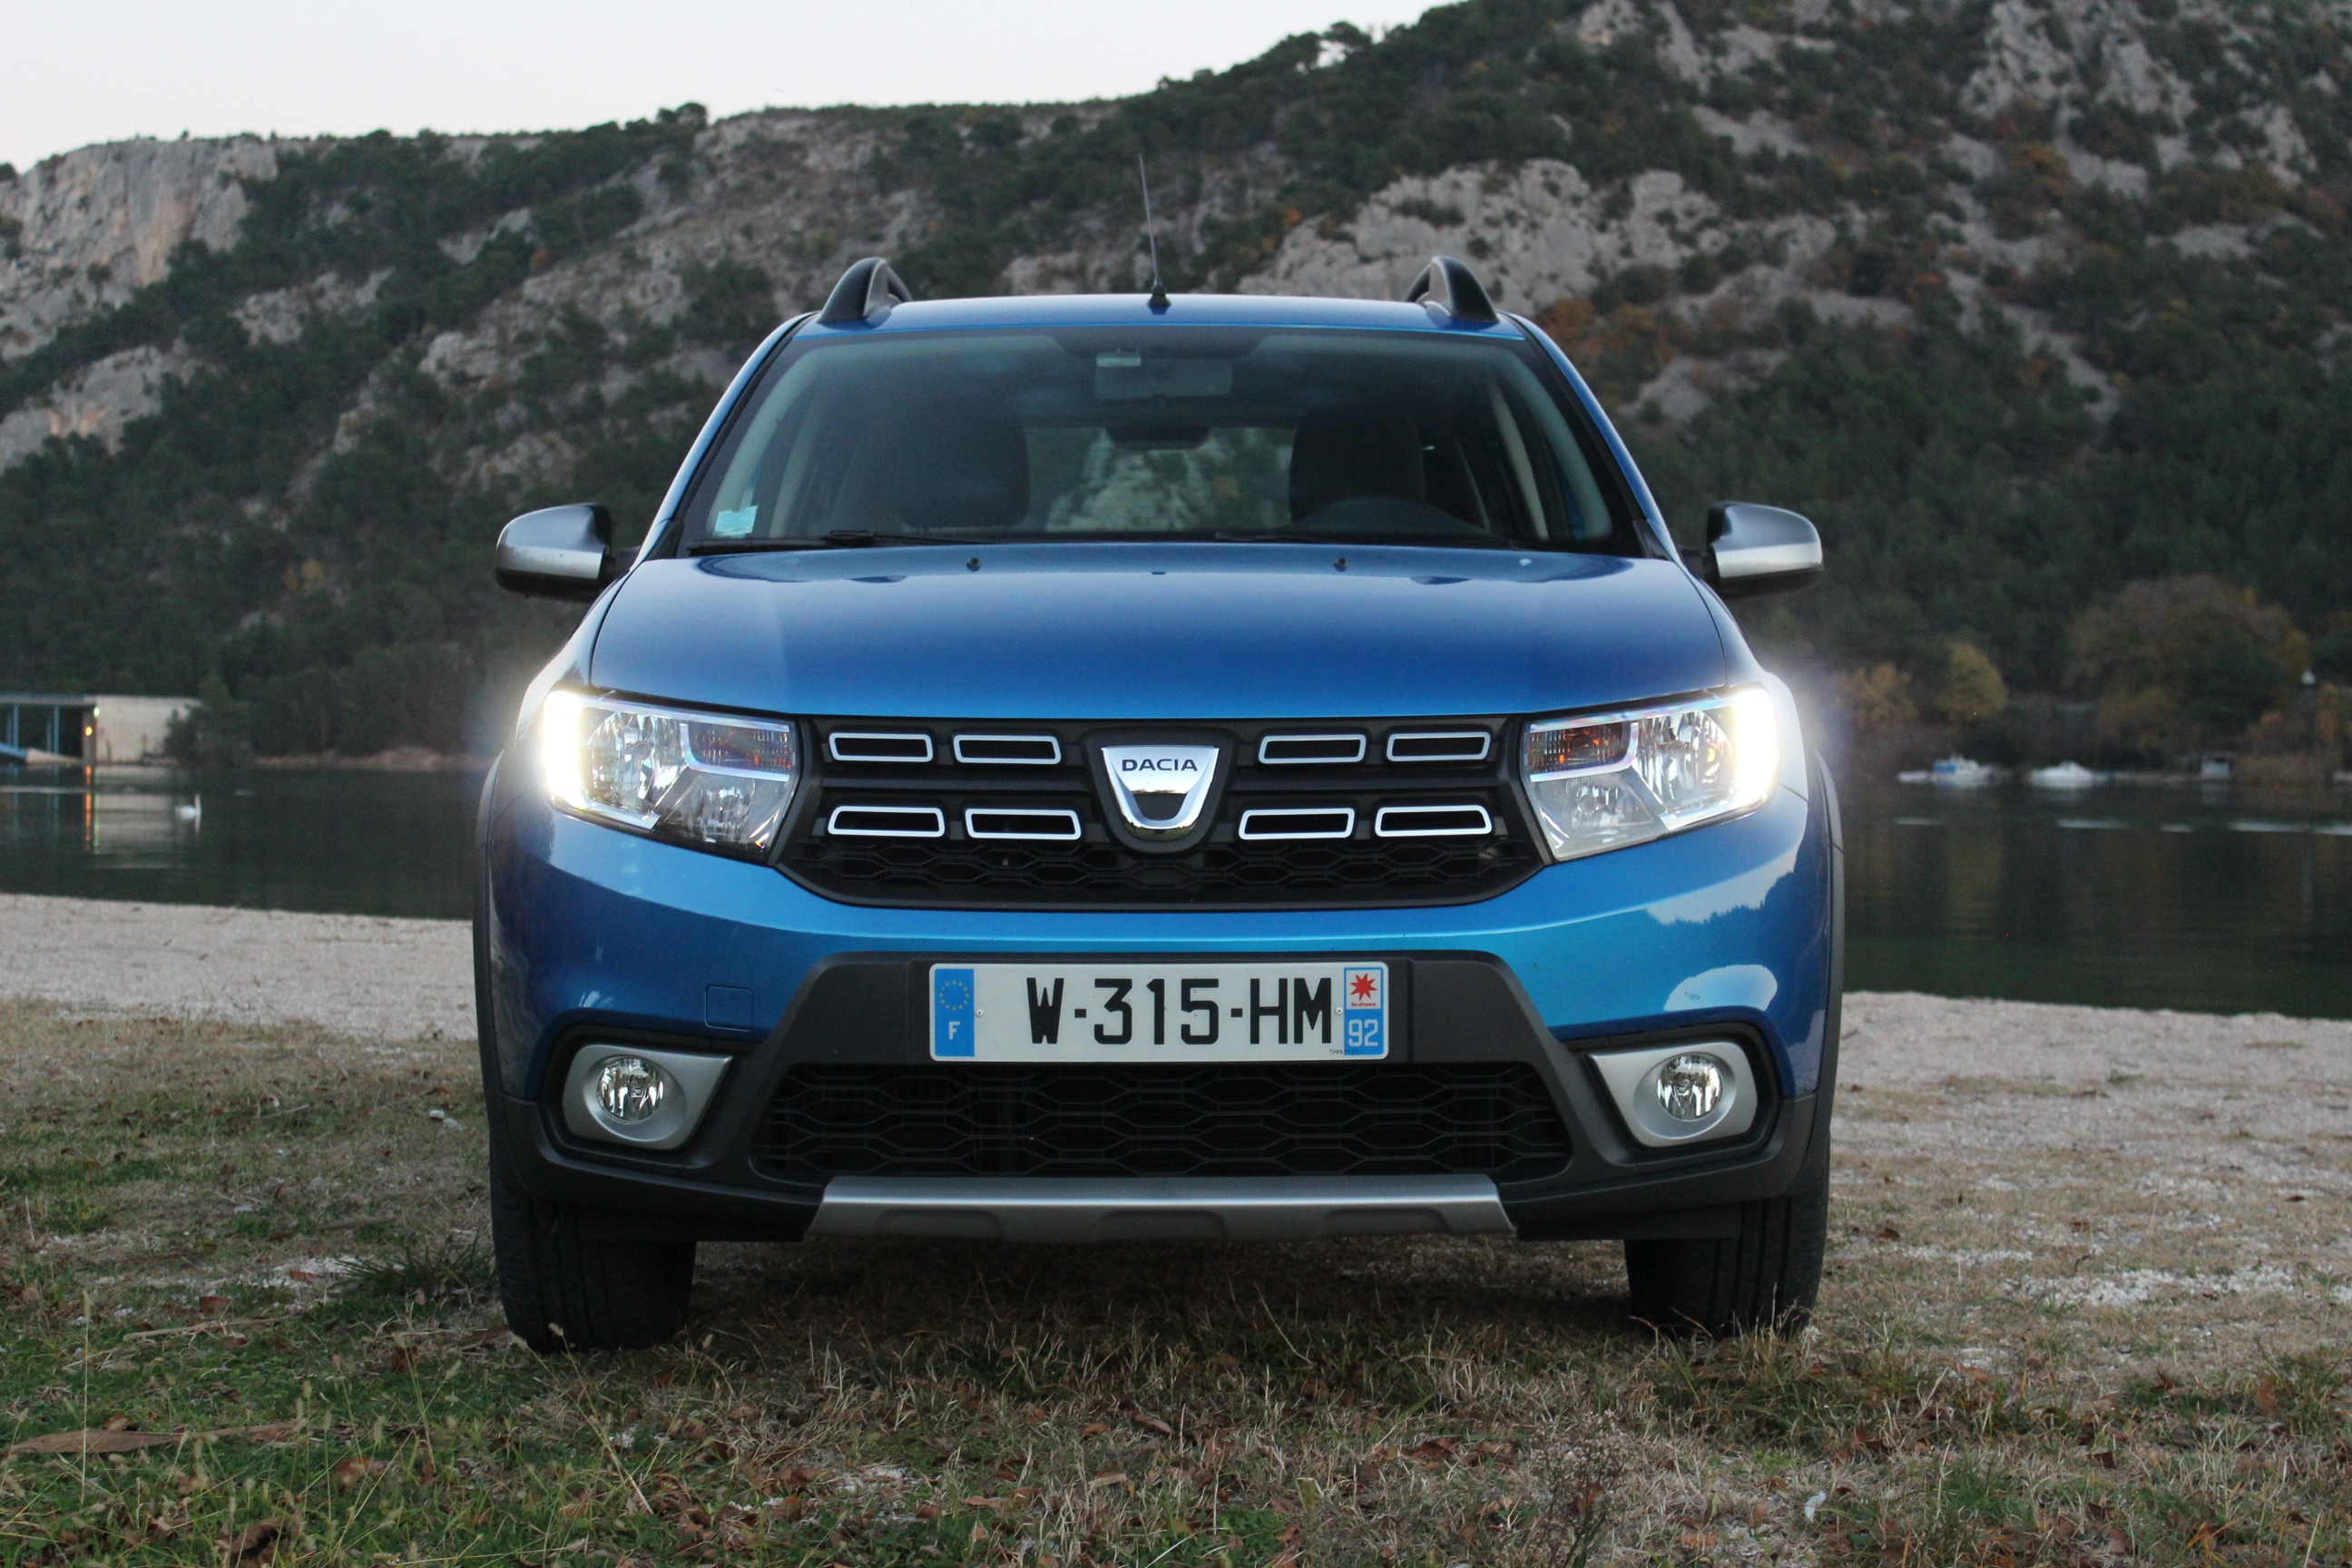 essai dacia sandero stepway tce 90 easy r pas vraiment un. Black Bedroom Furniture Sets. Home Design Ideas